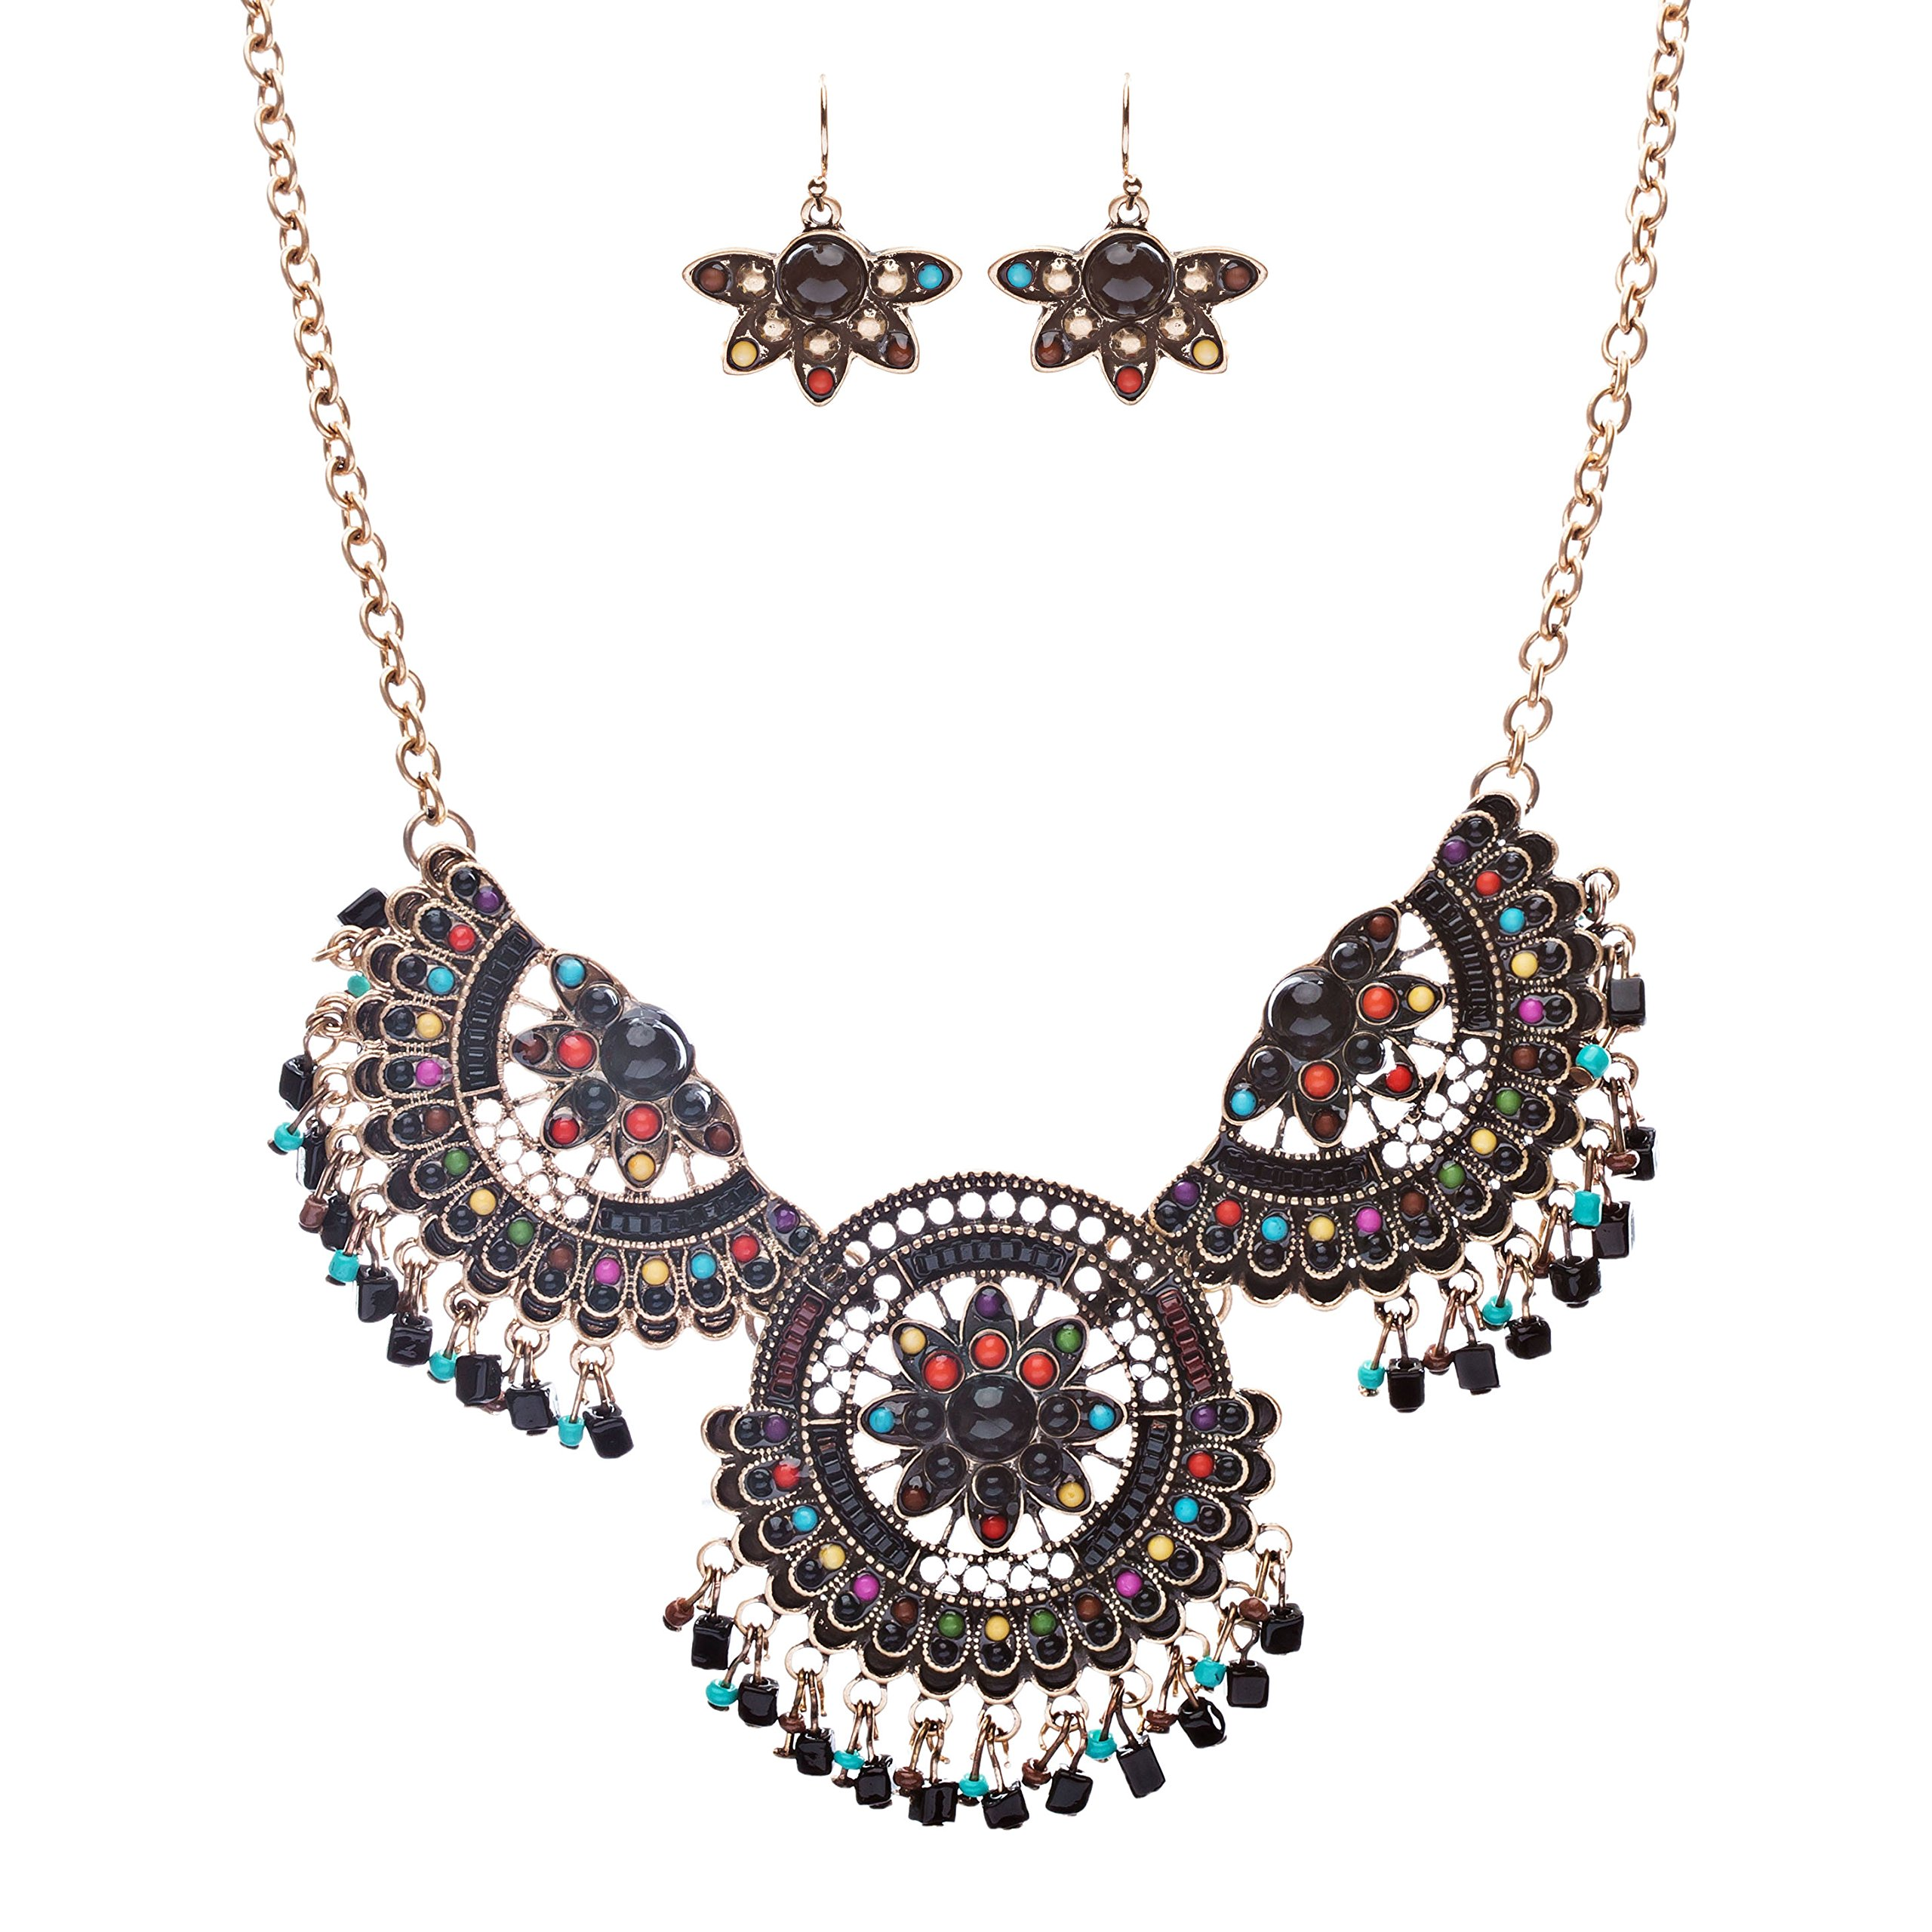 State-Of-The-Art Meticulous Dream Catcher Design Charm Necklace Set JN227 Black